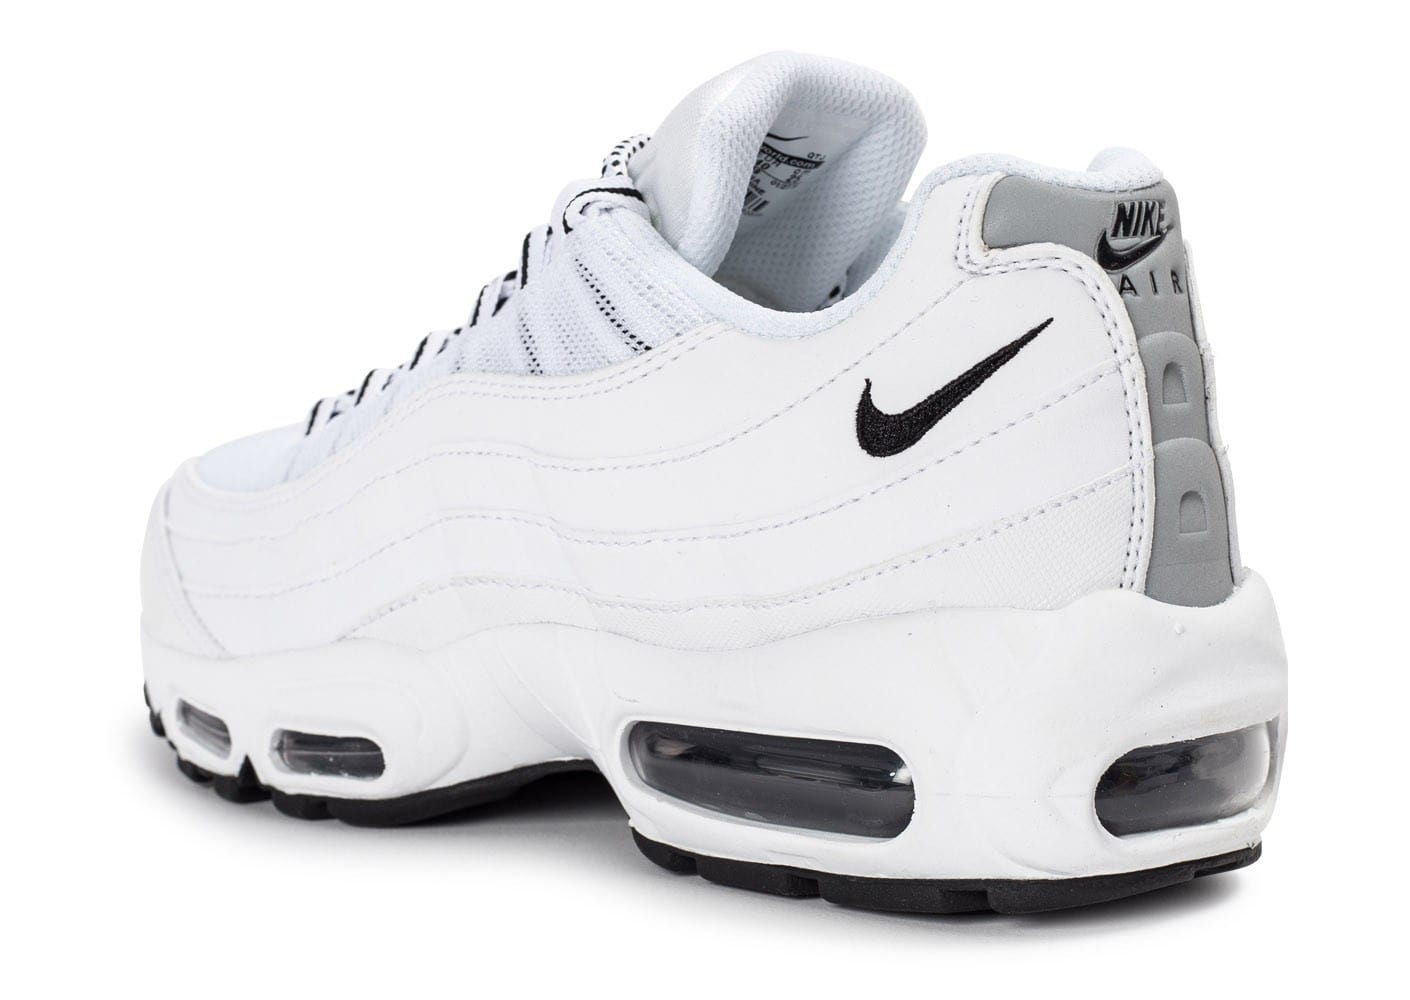 nike air max 95 blanche. Black Bedroom Furniture Sets. Home Design Ideas